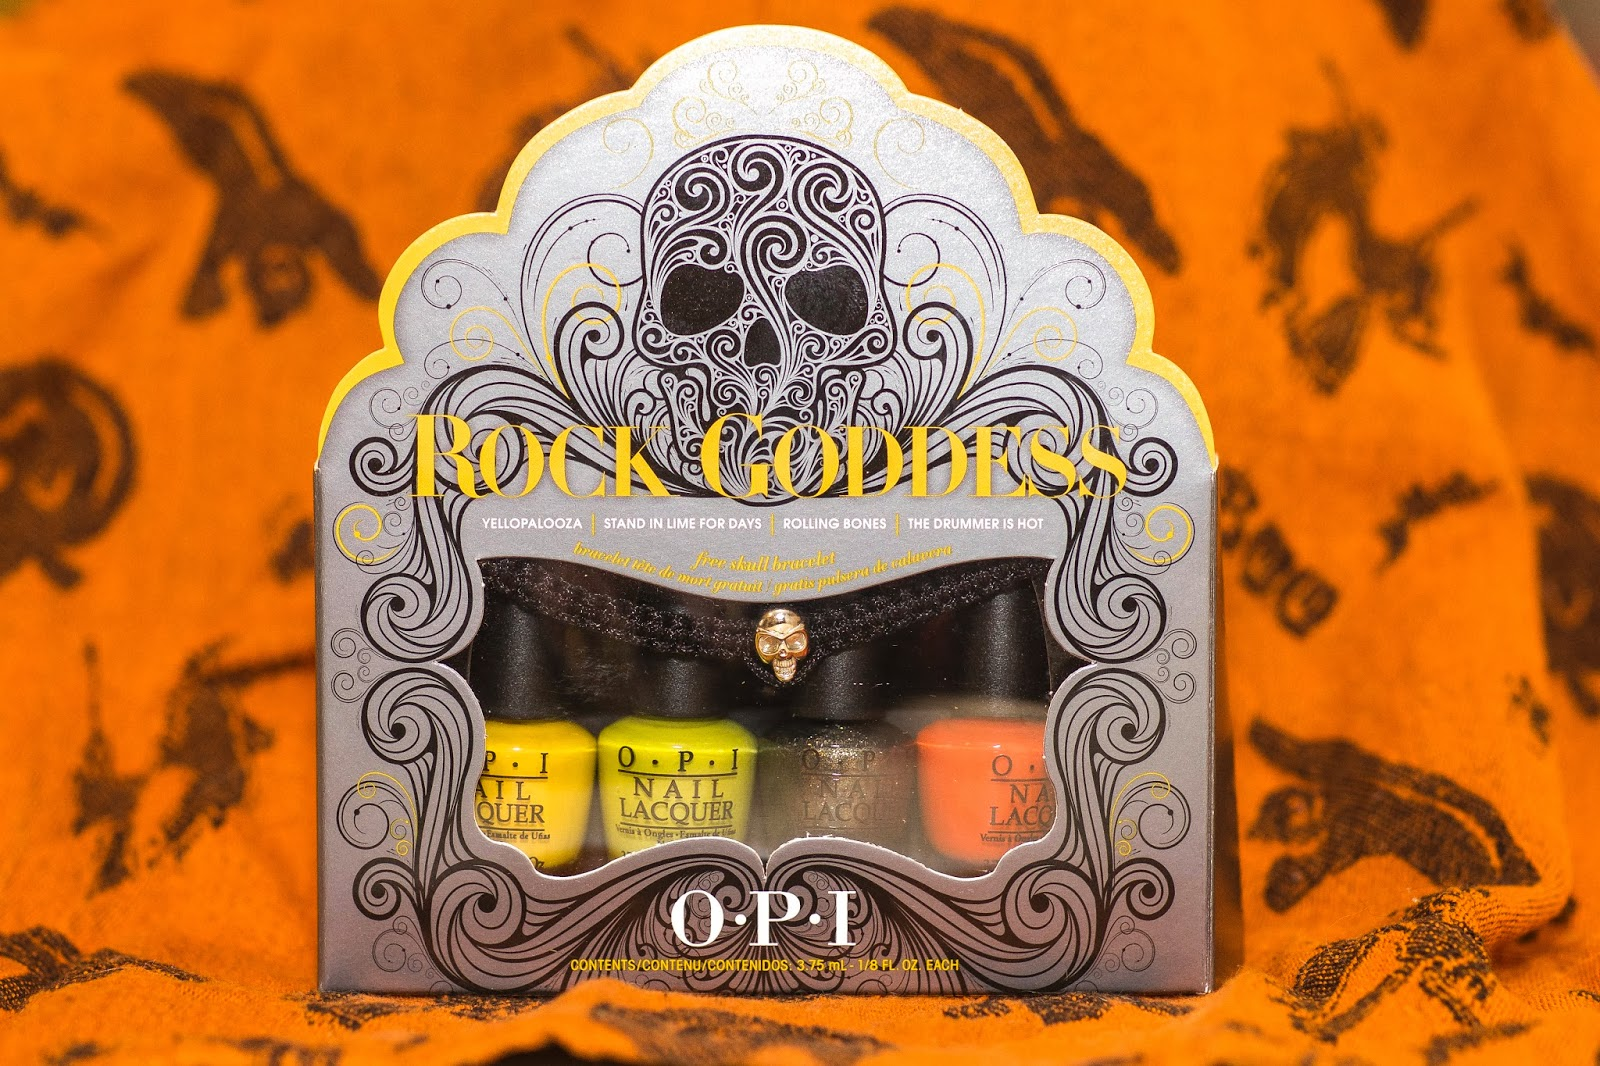 Opi goddess rock halloween nail polish collection forecasting dress in everyday in 2019